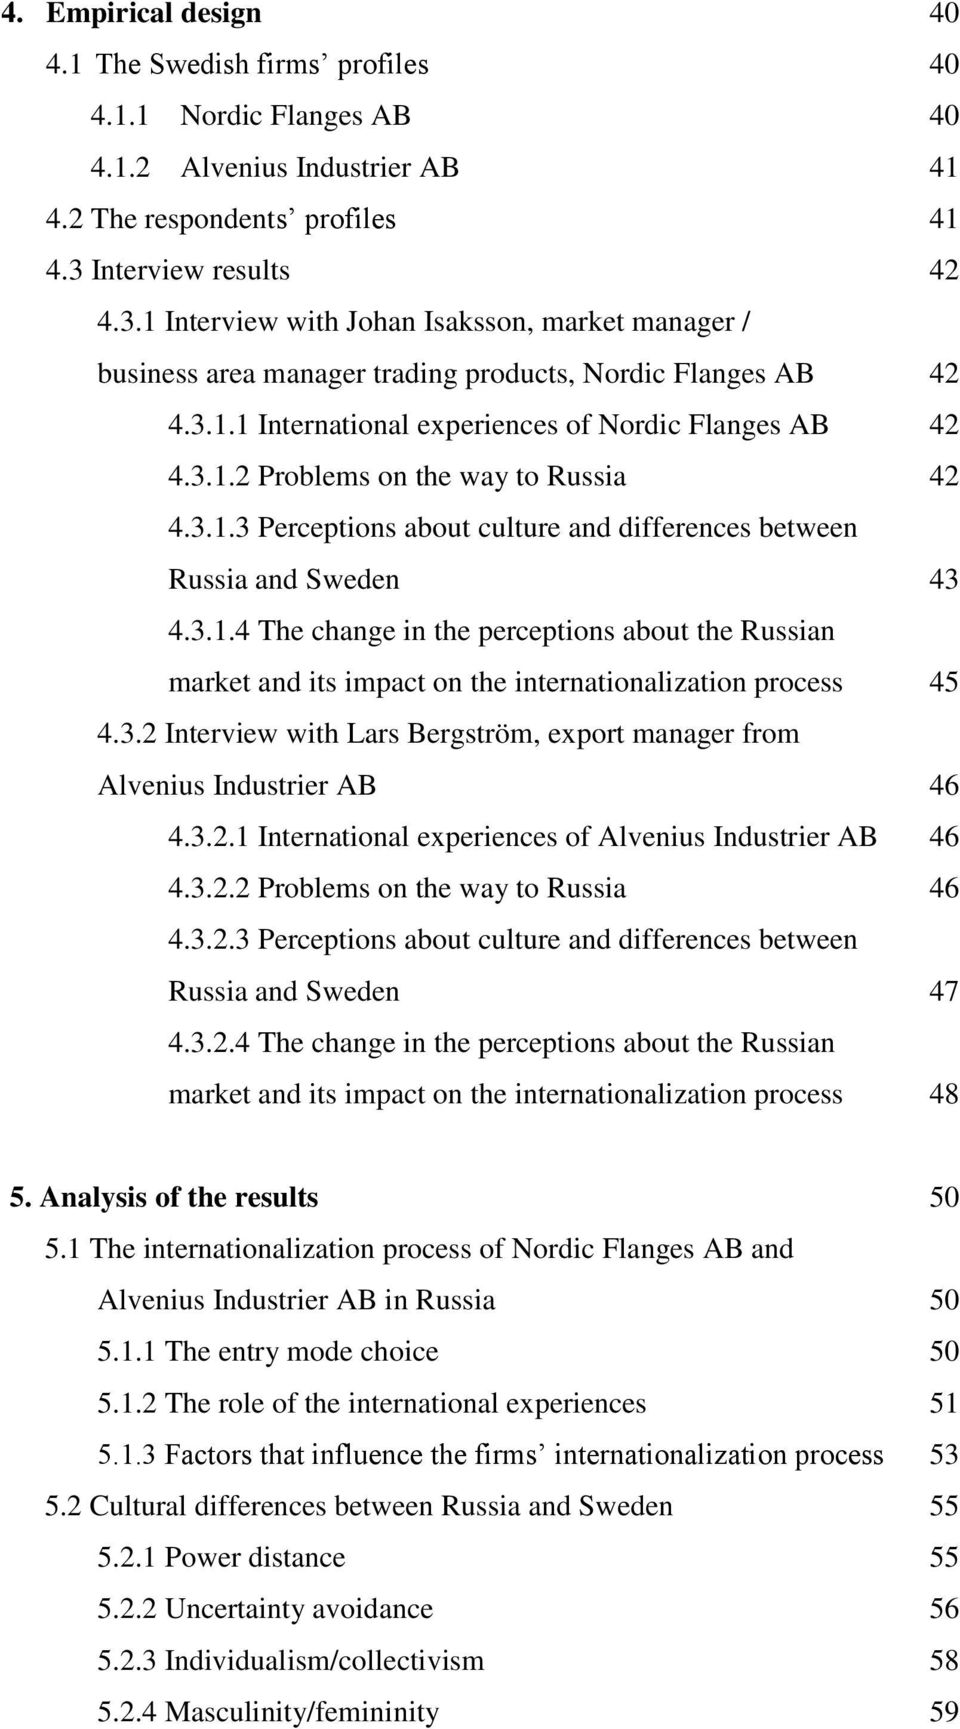 313 Perceptions About Culture And Differences Between Russia Sweden 43 4314